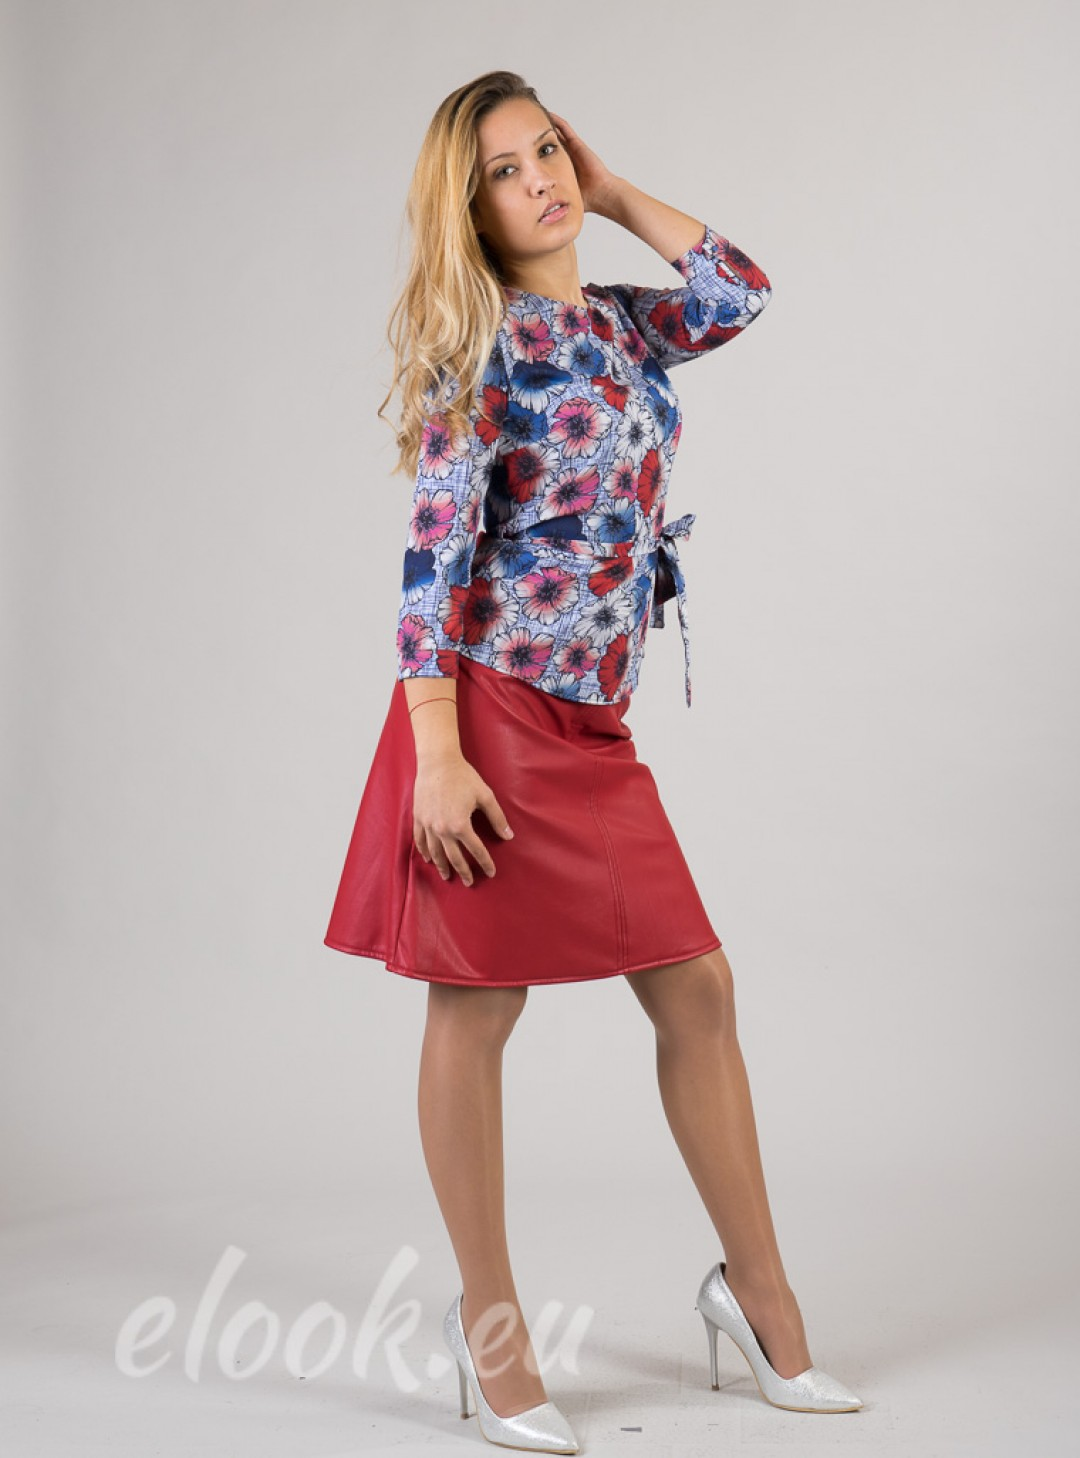 Blouse with 3/4 sleeves, belt ...